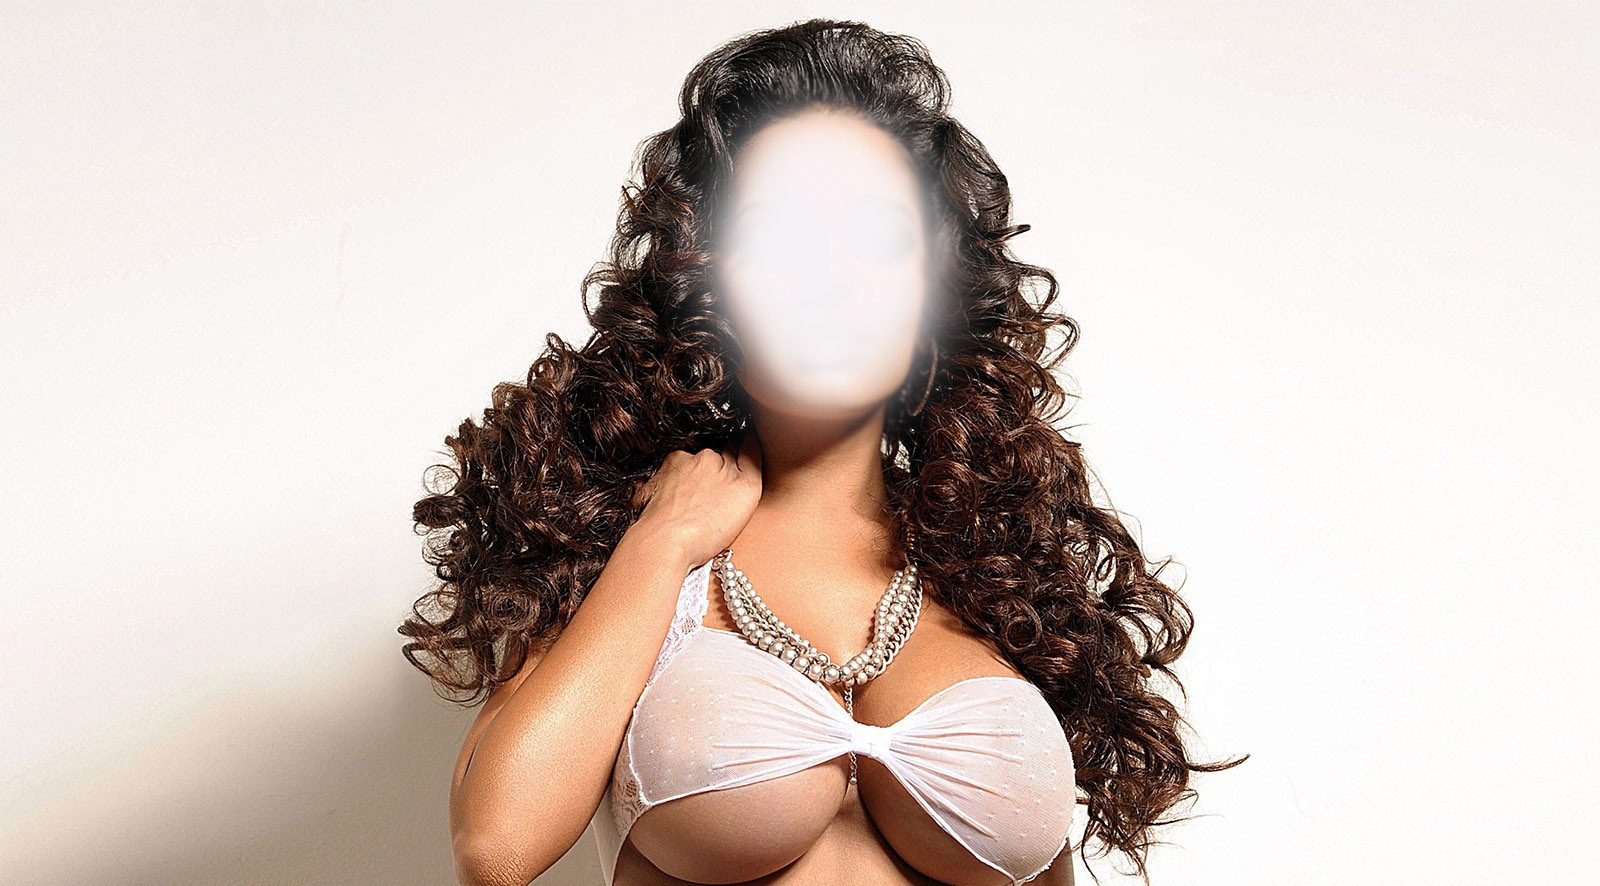 Dehradun Escorts Services